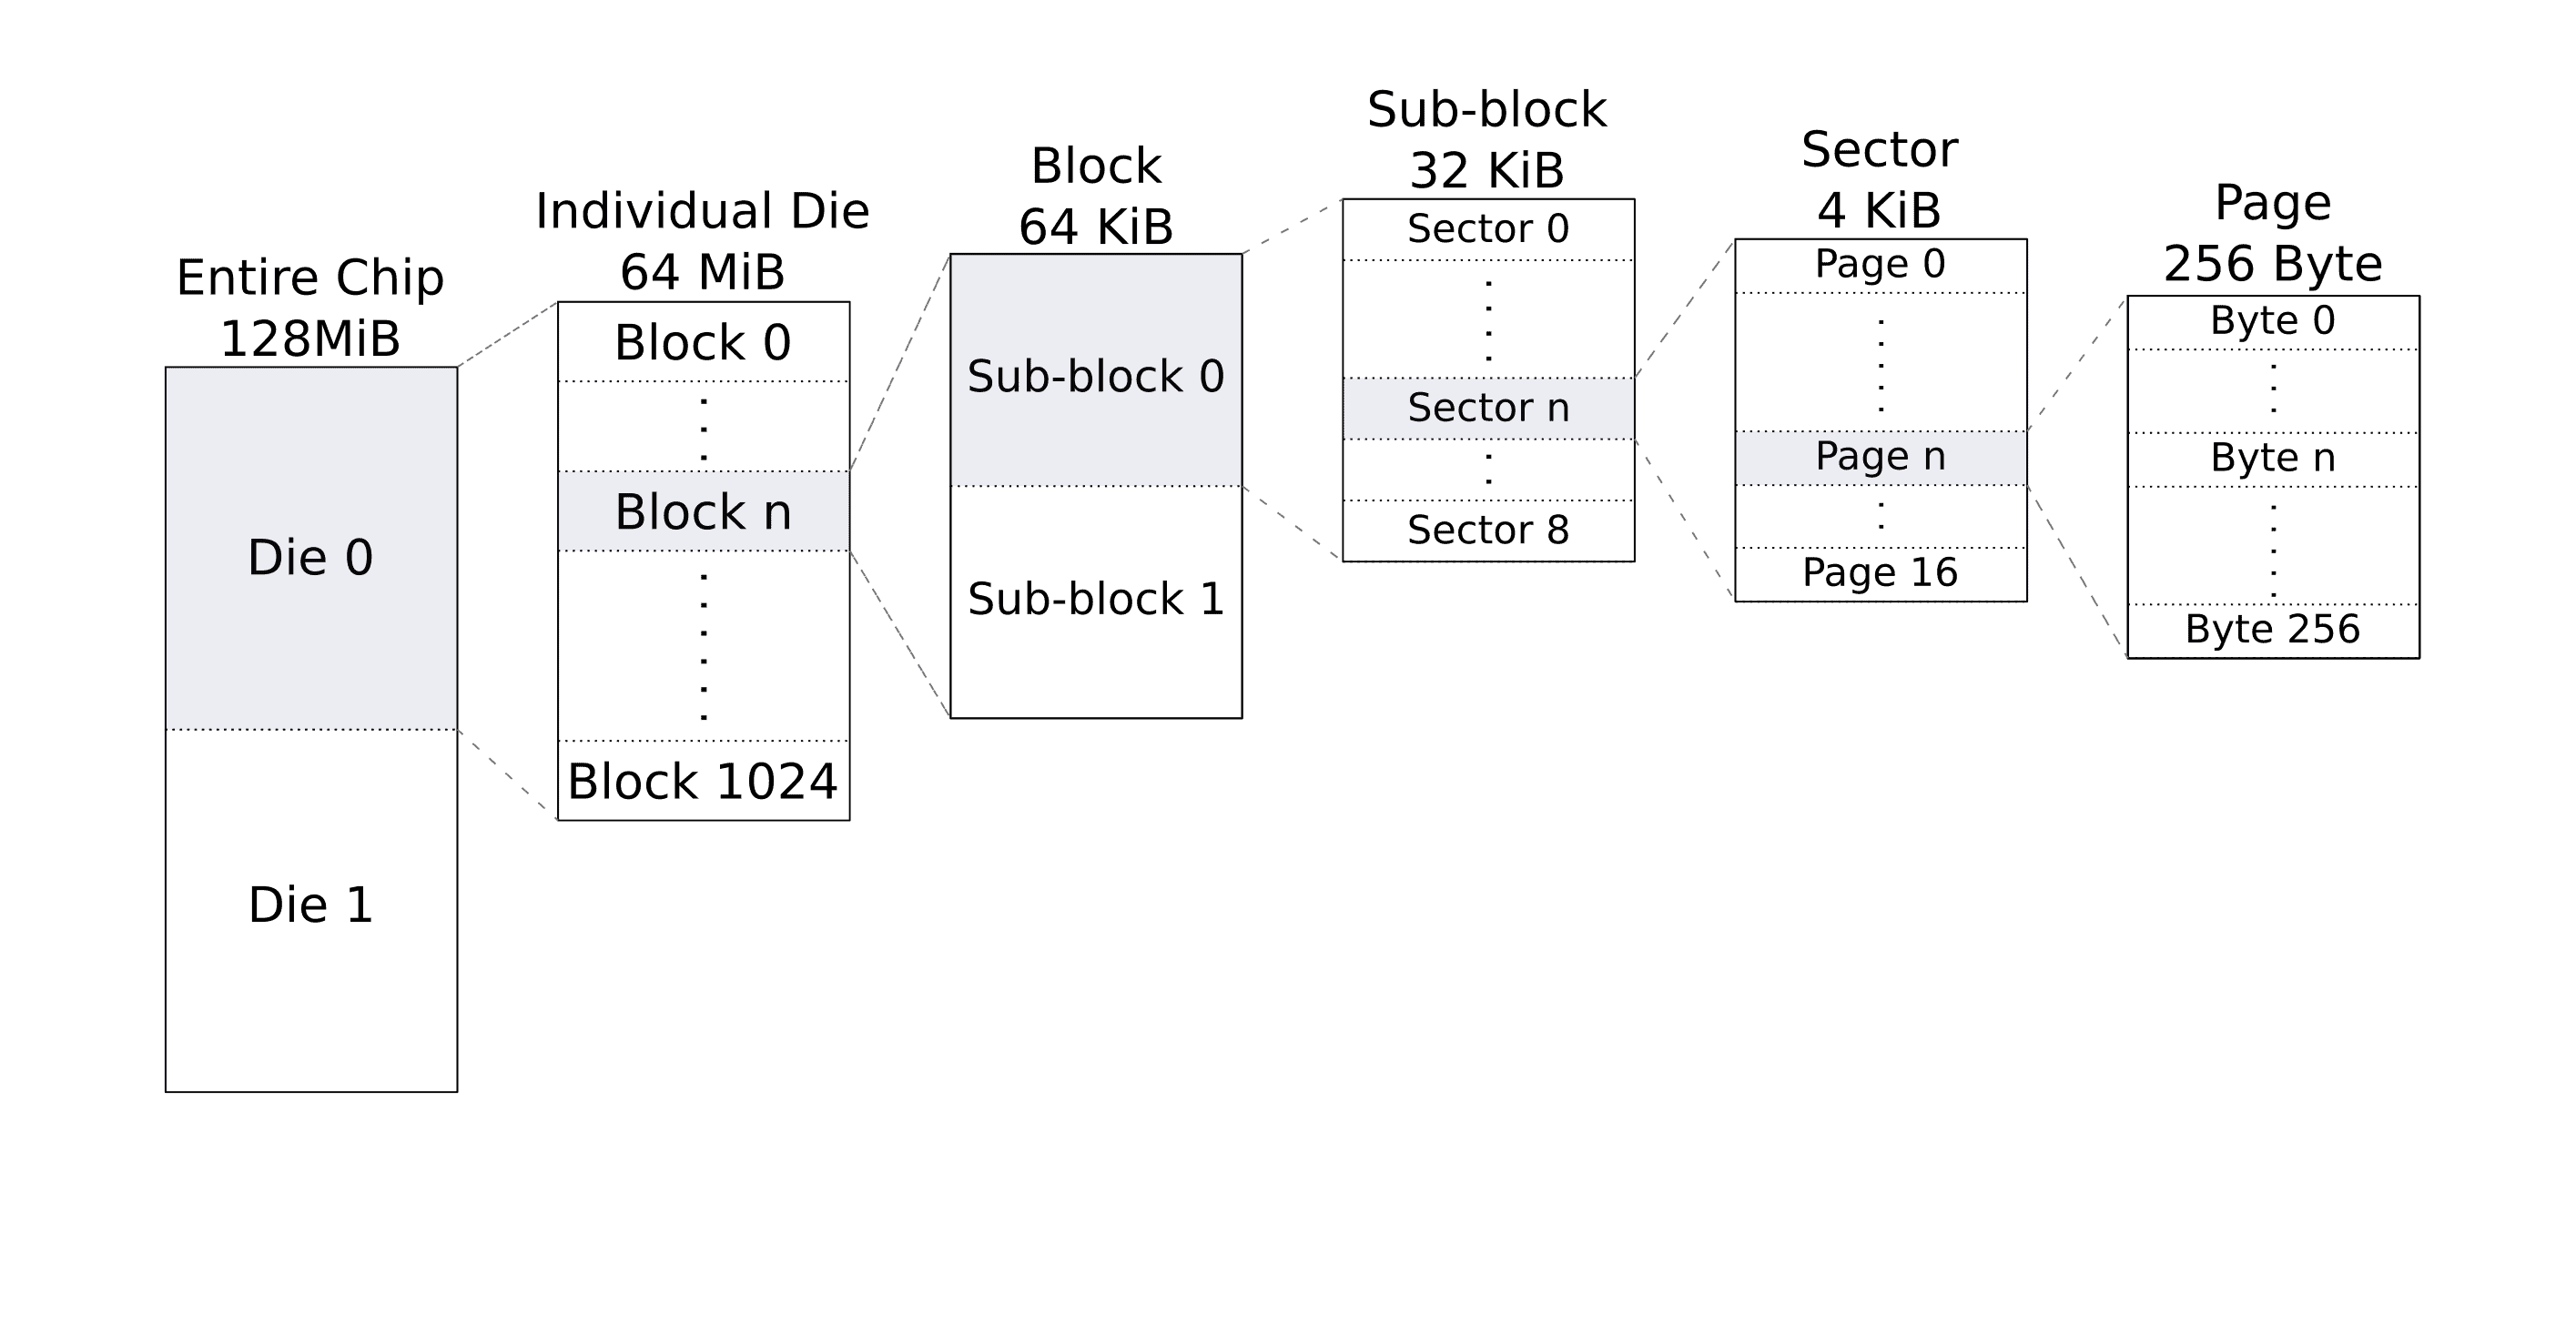 Diagram of the common memory subdivisions of a QSPI NOR Flash memory with the Entire chip as the largest unit followed by individual dies, blocks, sub-block, sectors and pages.